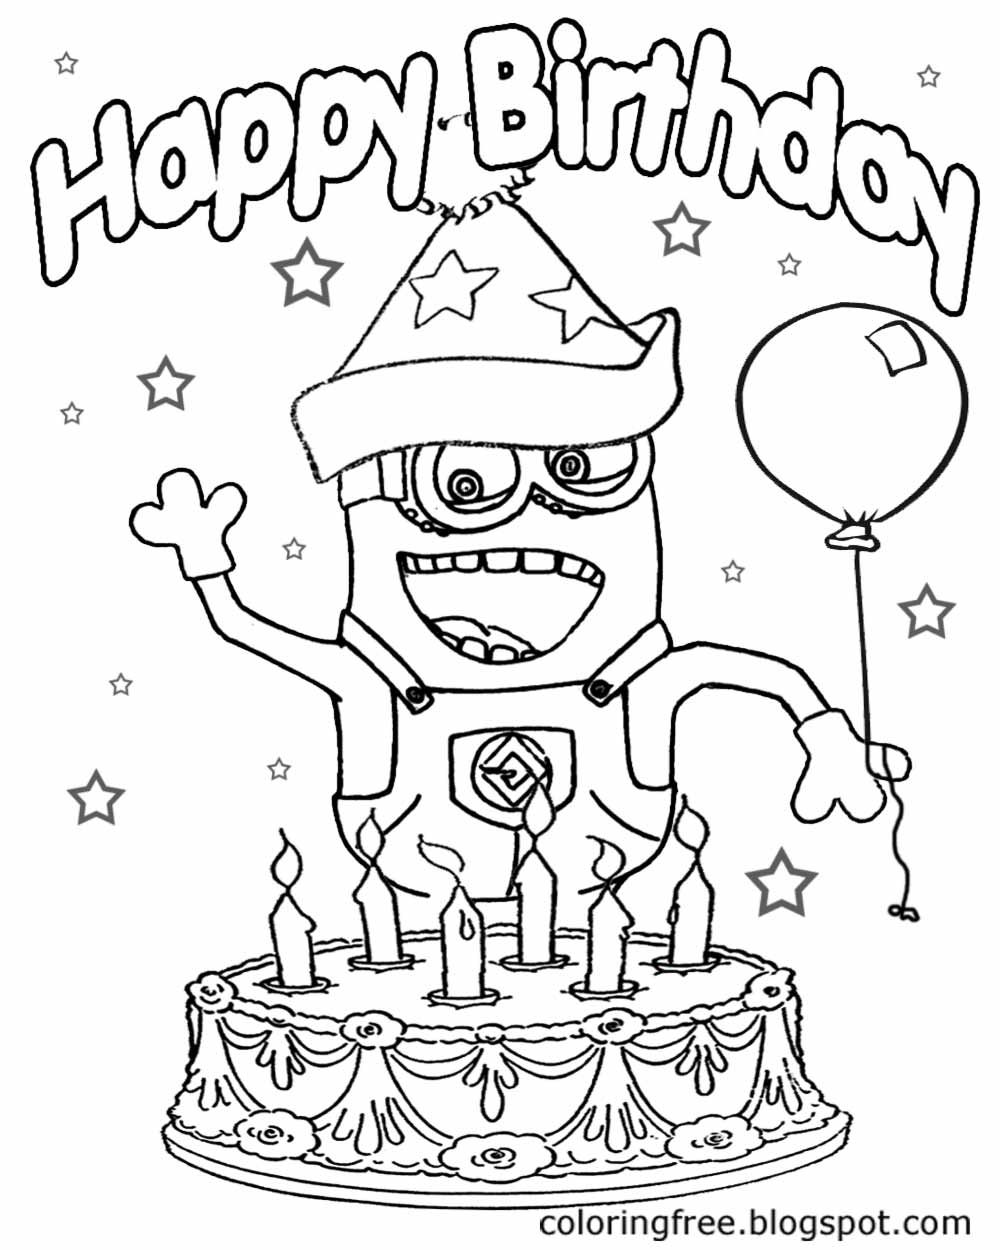 Big party cake with candles happy birthday minion coloring pages